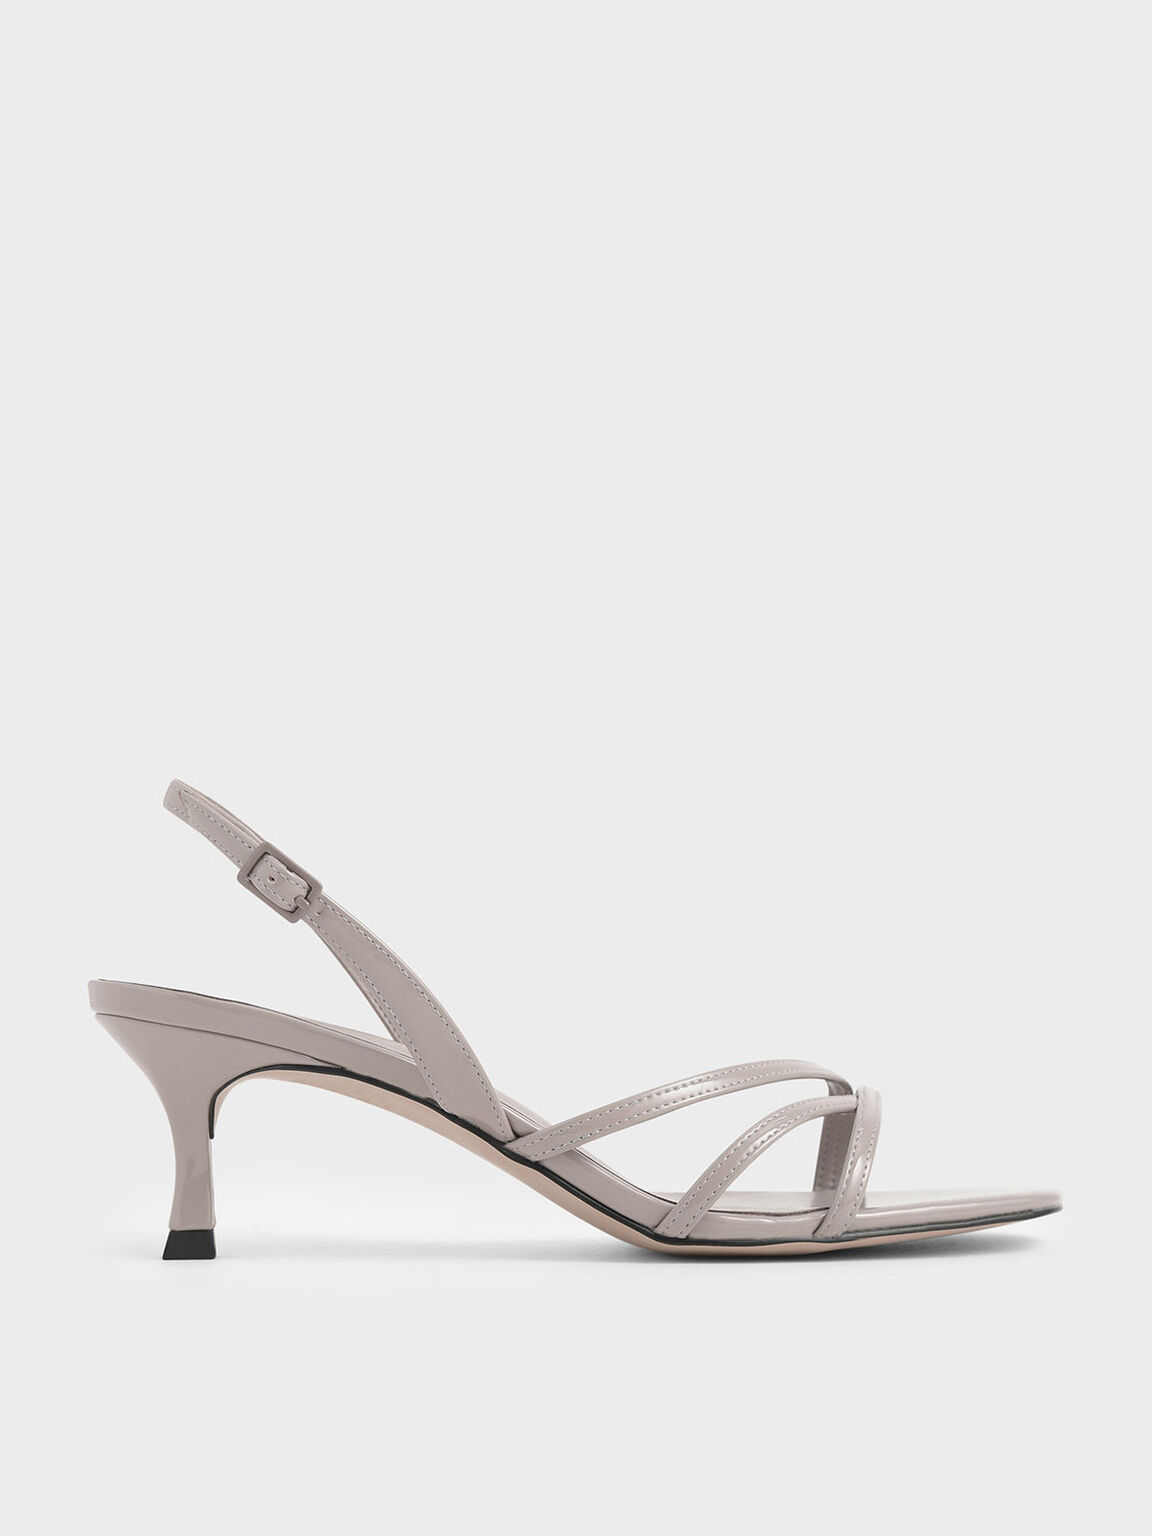 Asymmetric Strappy Patent Heels, Nude, hi-res